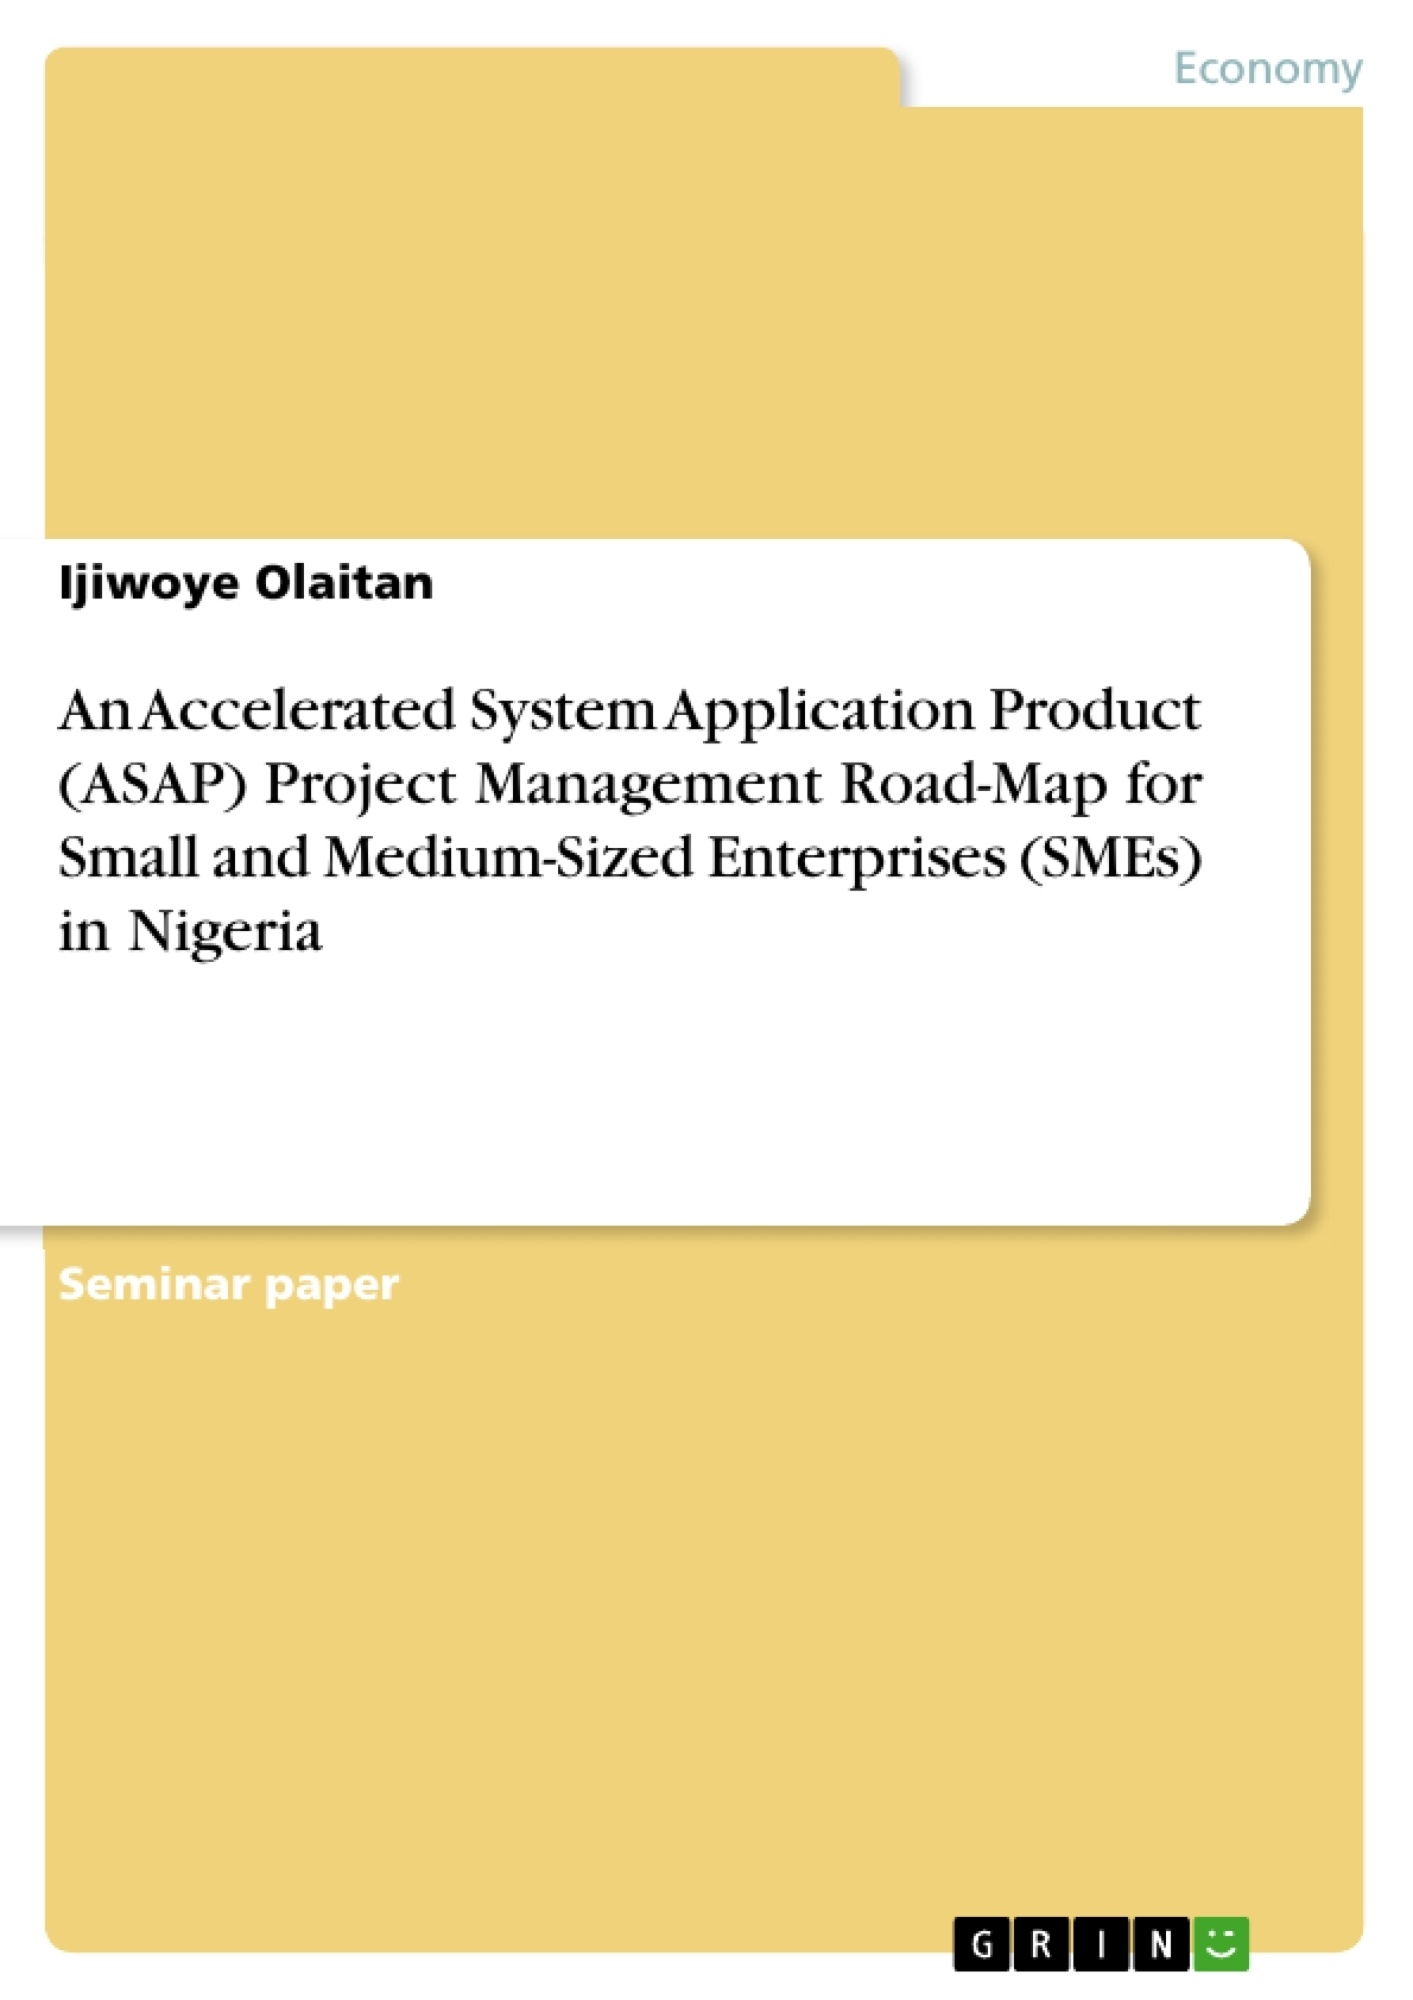 Title: An Accelerated System Application Product (ASAP) Project Management Road-Map for Small and Medium-Sized Enterprises (SMEs) in Nigeria